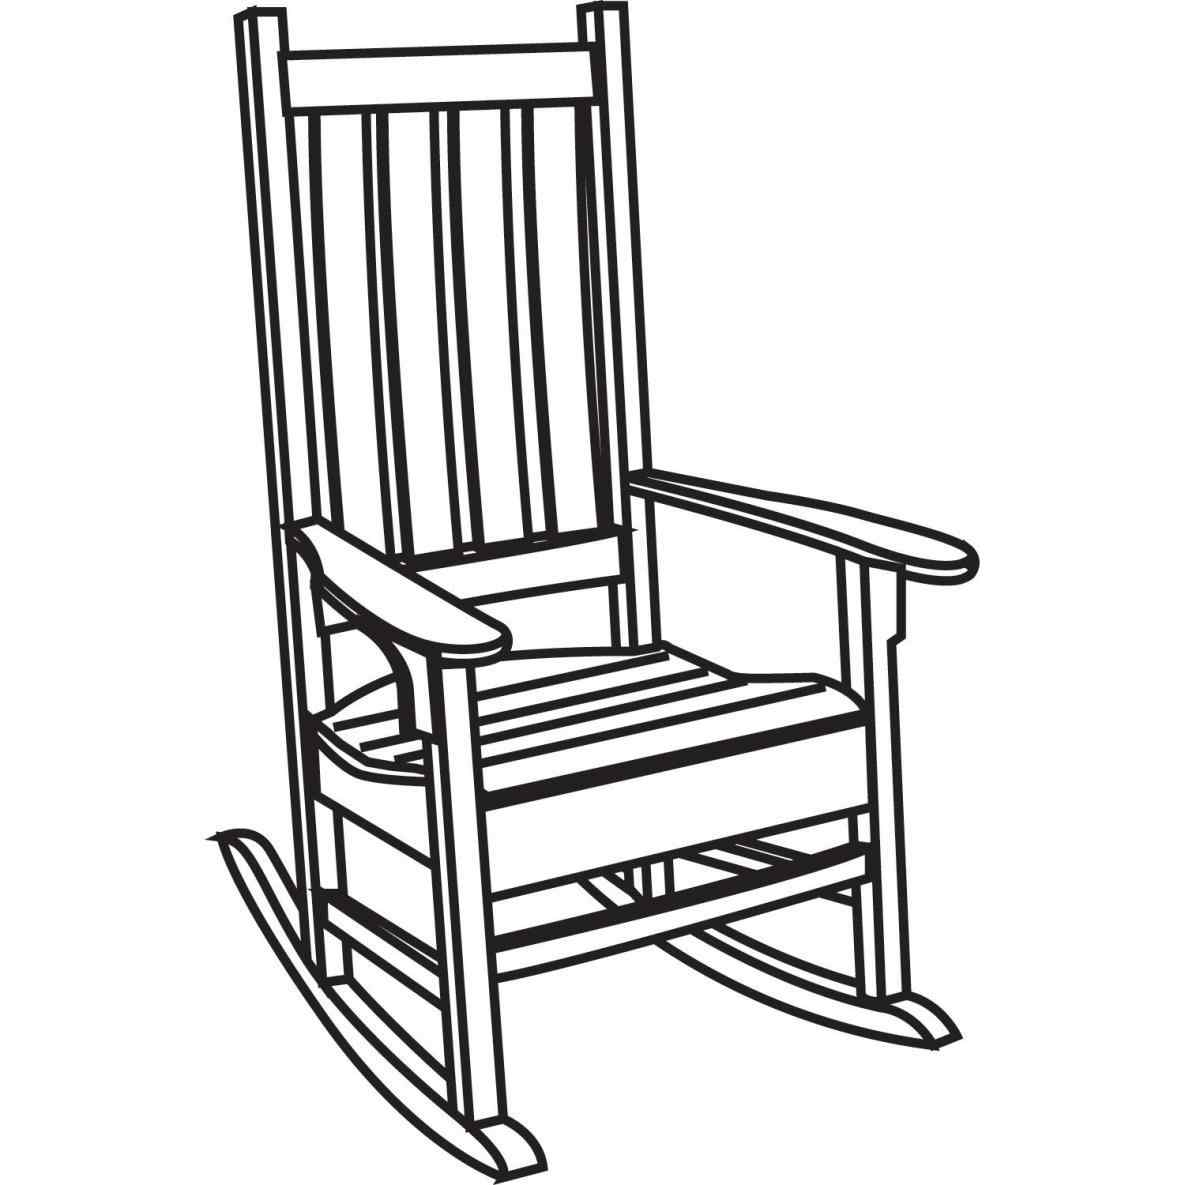 drawing chair chair drawing at getdrawings free download drawing chair